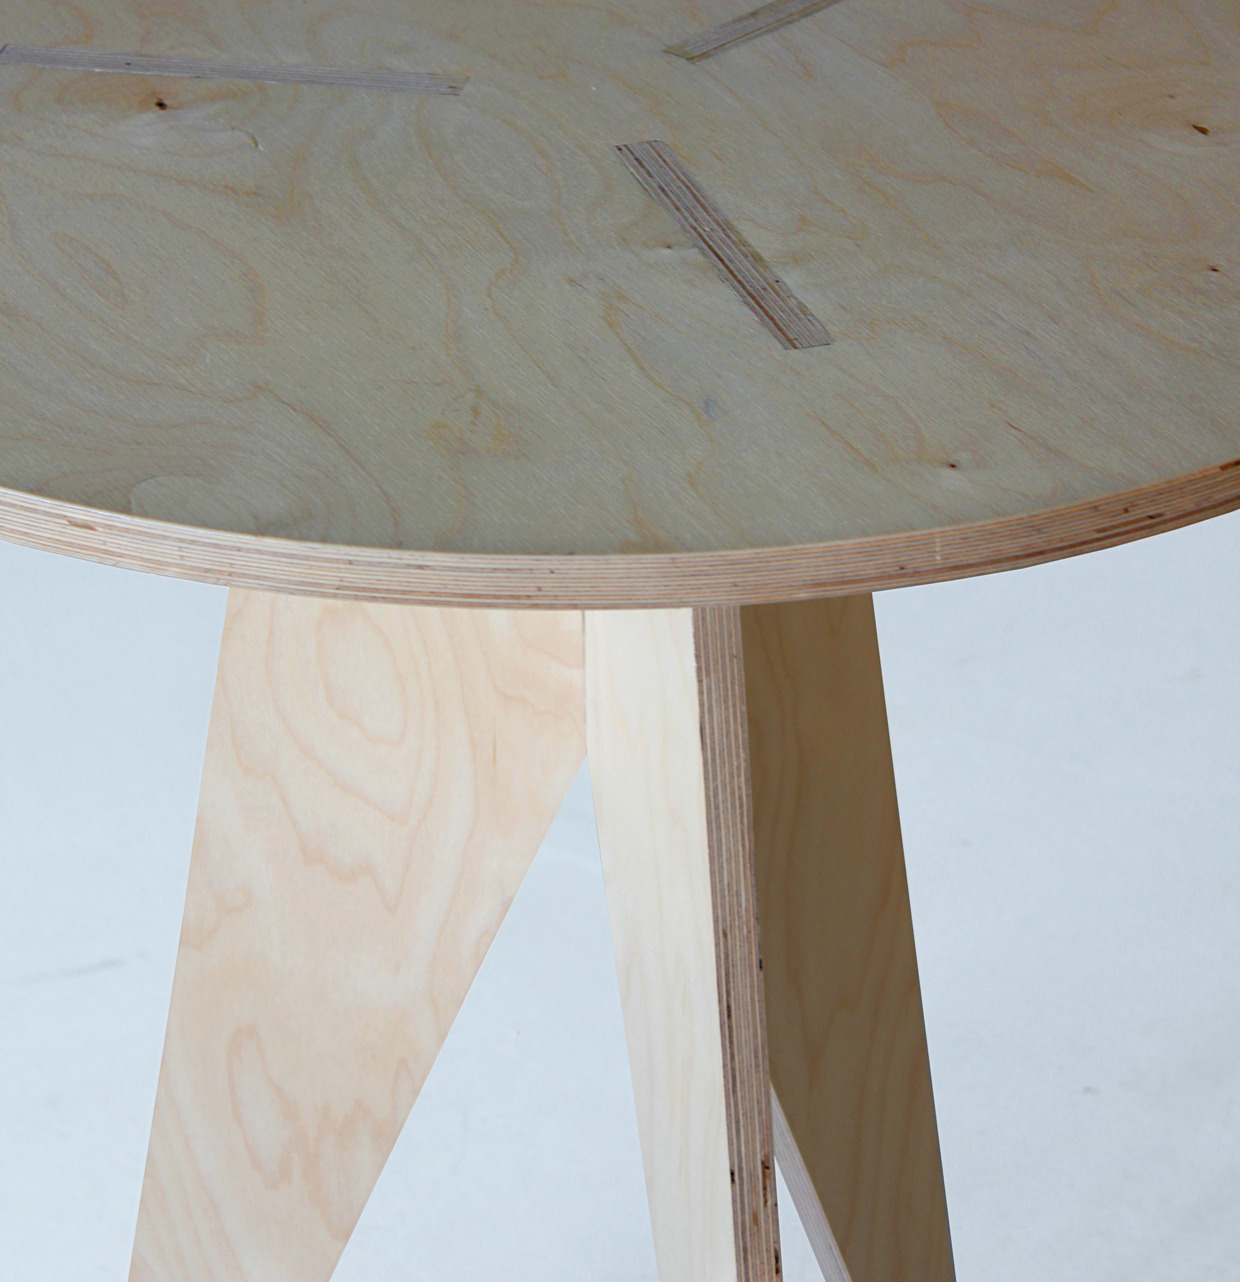 Furniture_P01_Plywood-dontDIY-13